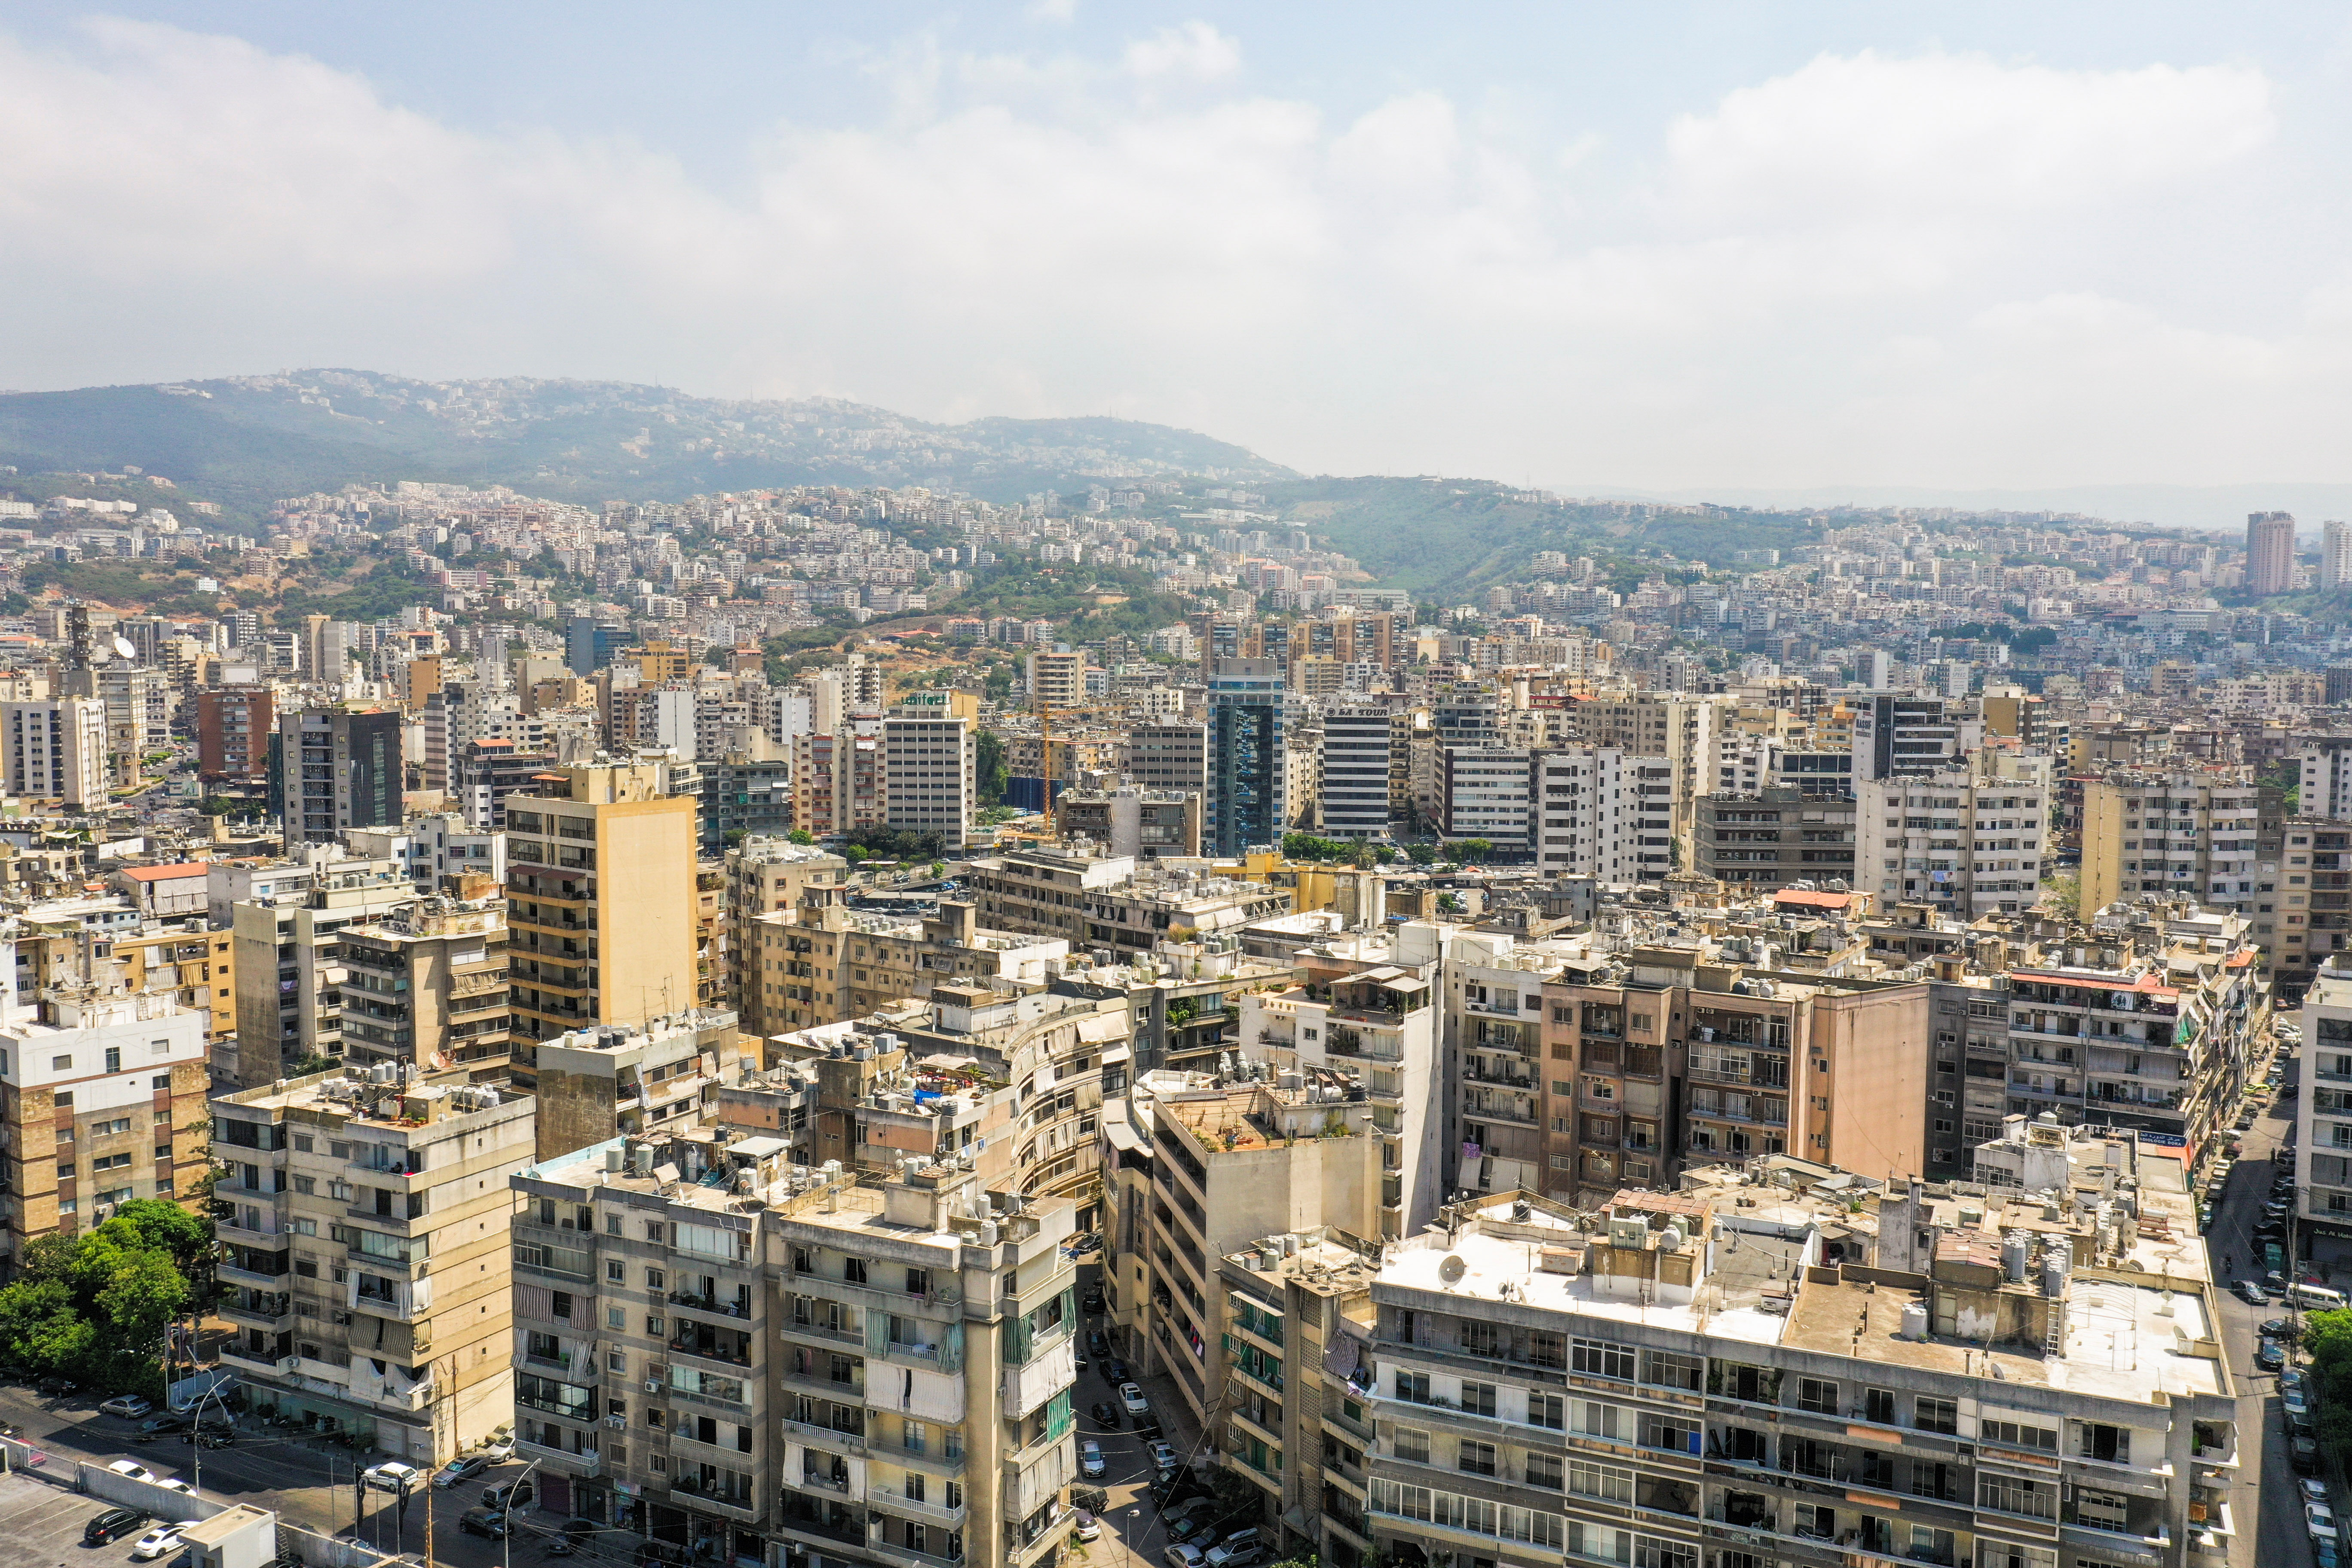 A view shows residential buildings in Beirut, Lebanon August 20, 2021. Picture taken August 20, 2021. Picture taken with a drone. REUTERS/Issam Abdallah